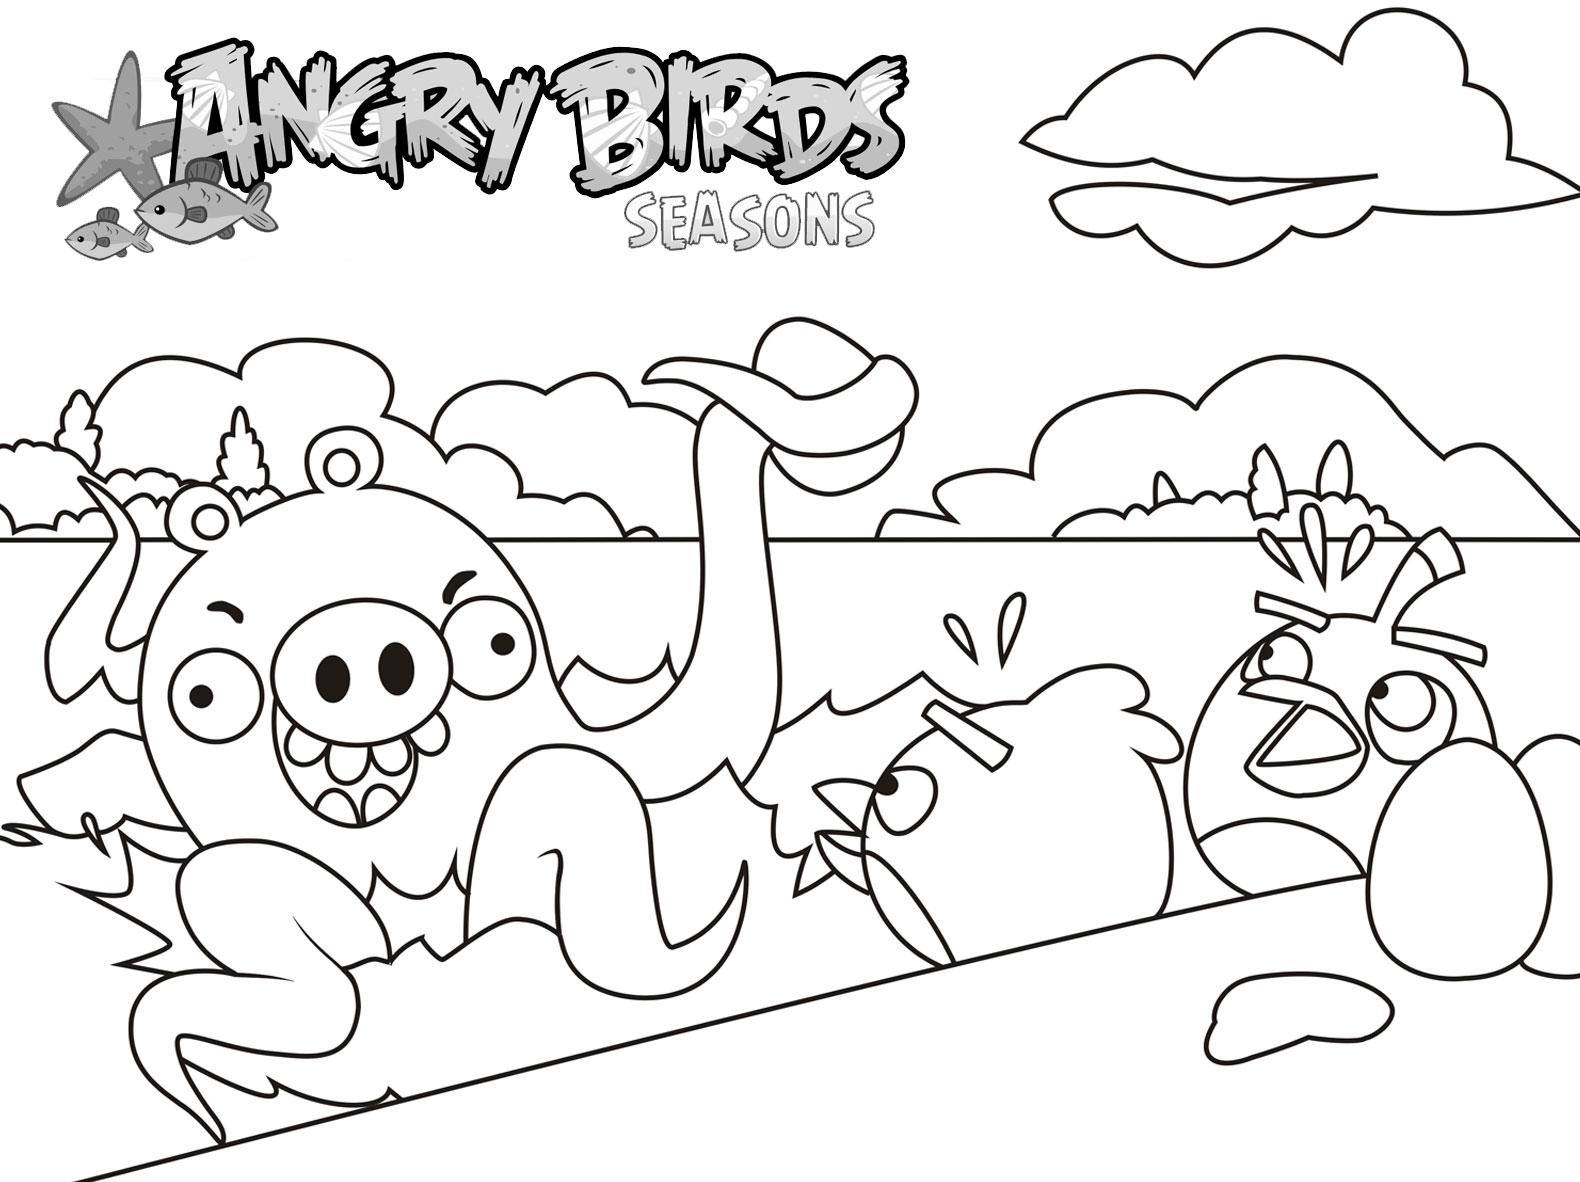 Dibujo para colorear de Angry Birds Seasons: Red y Black ven un ...